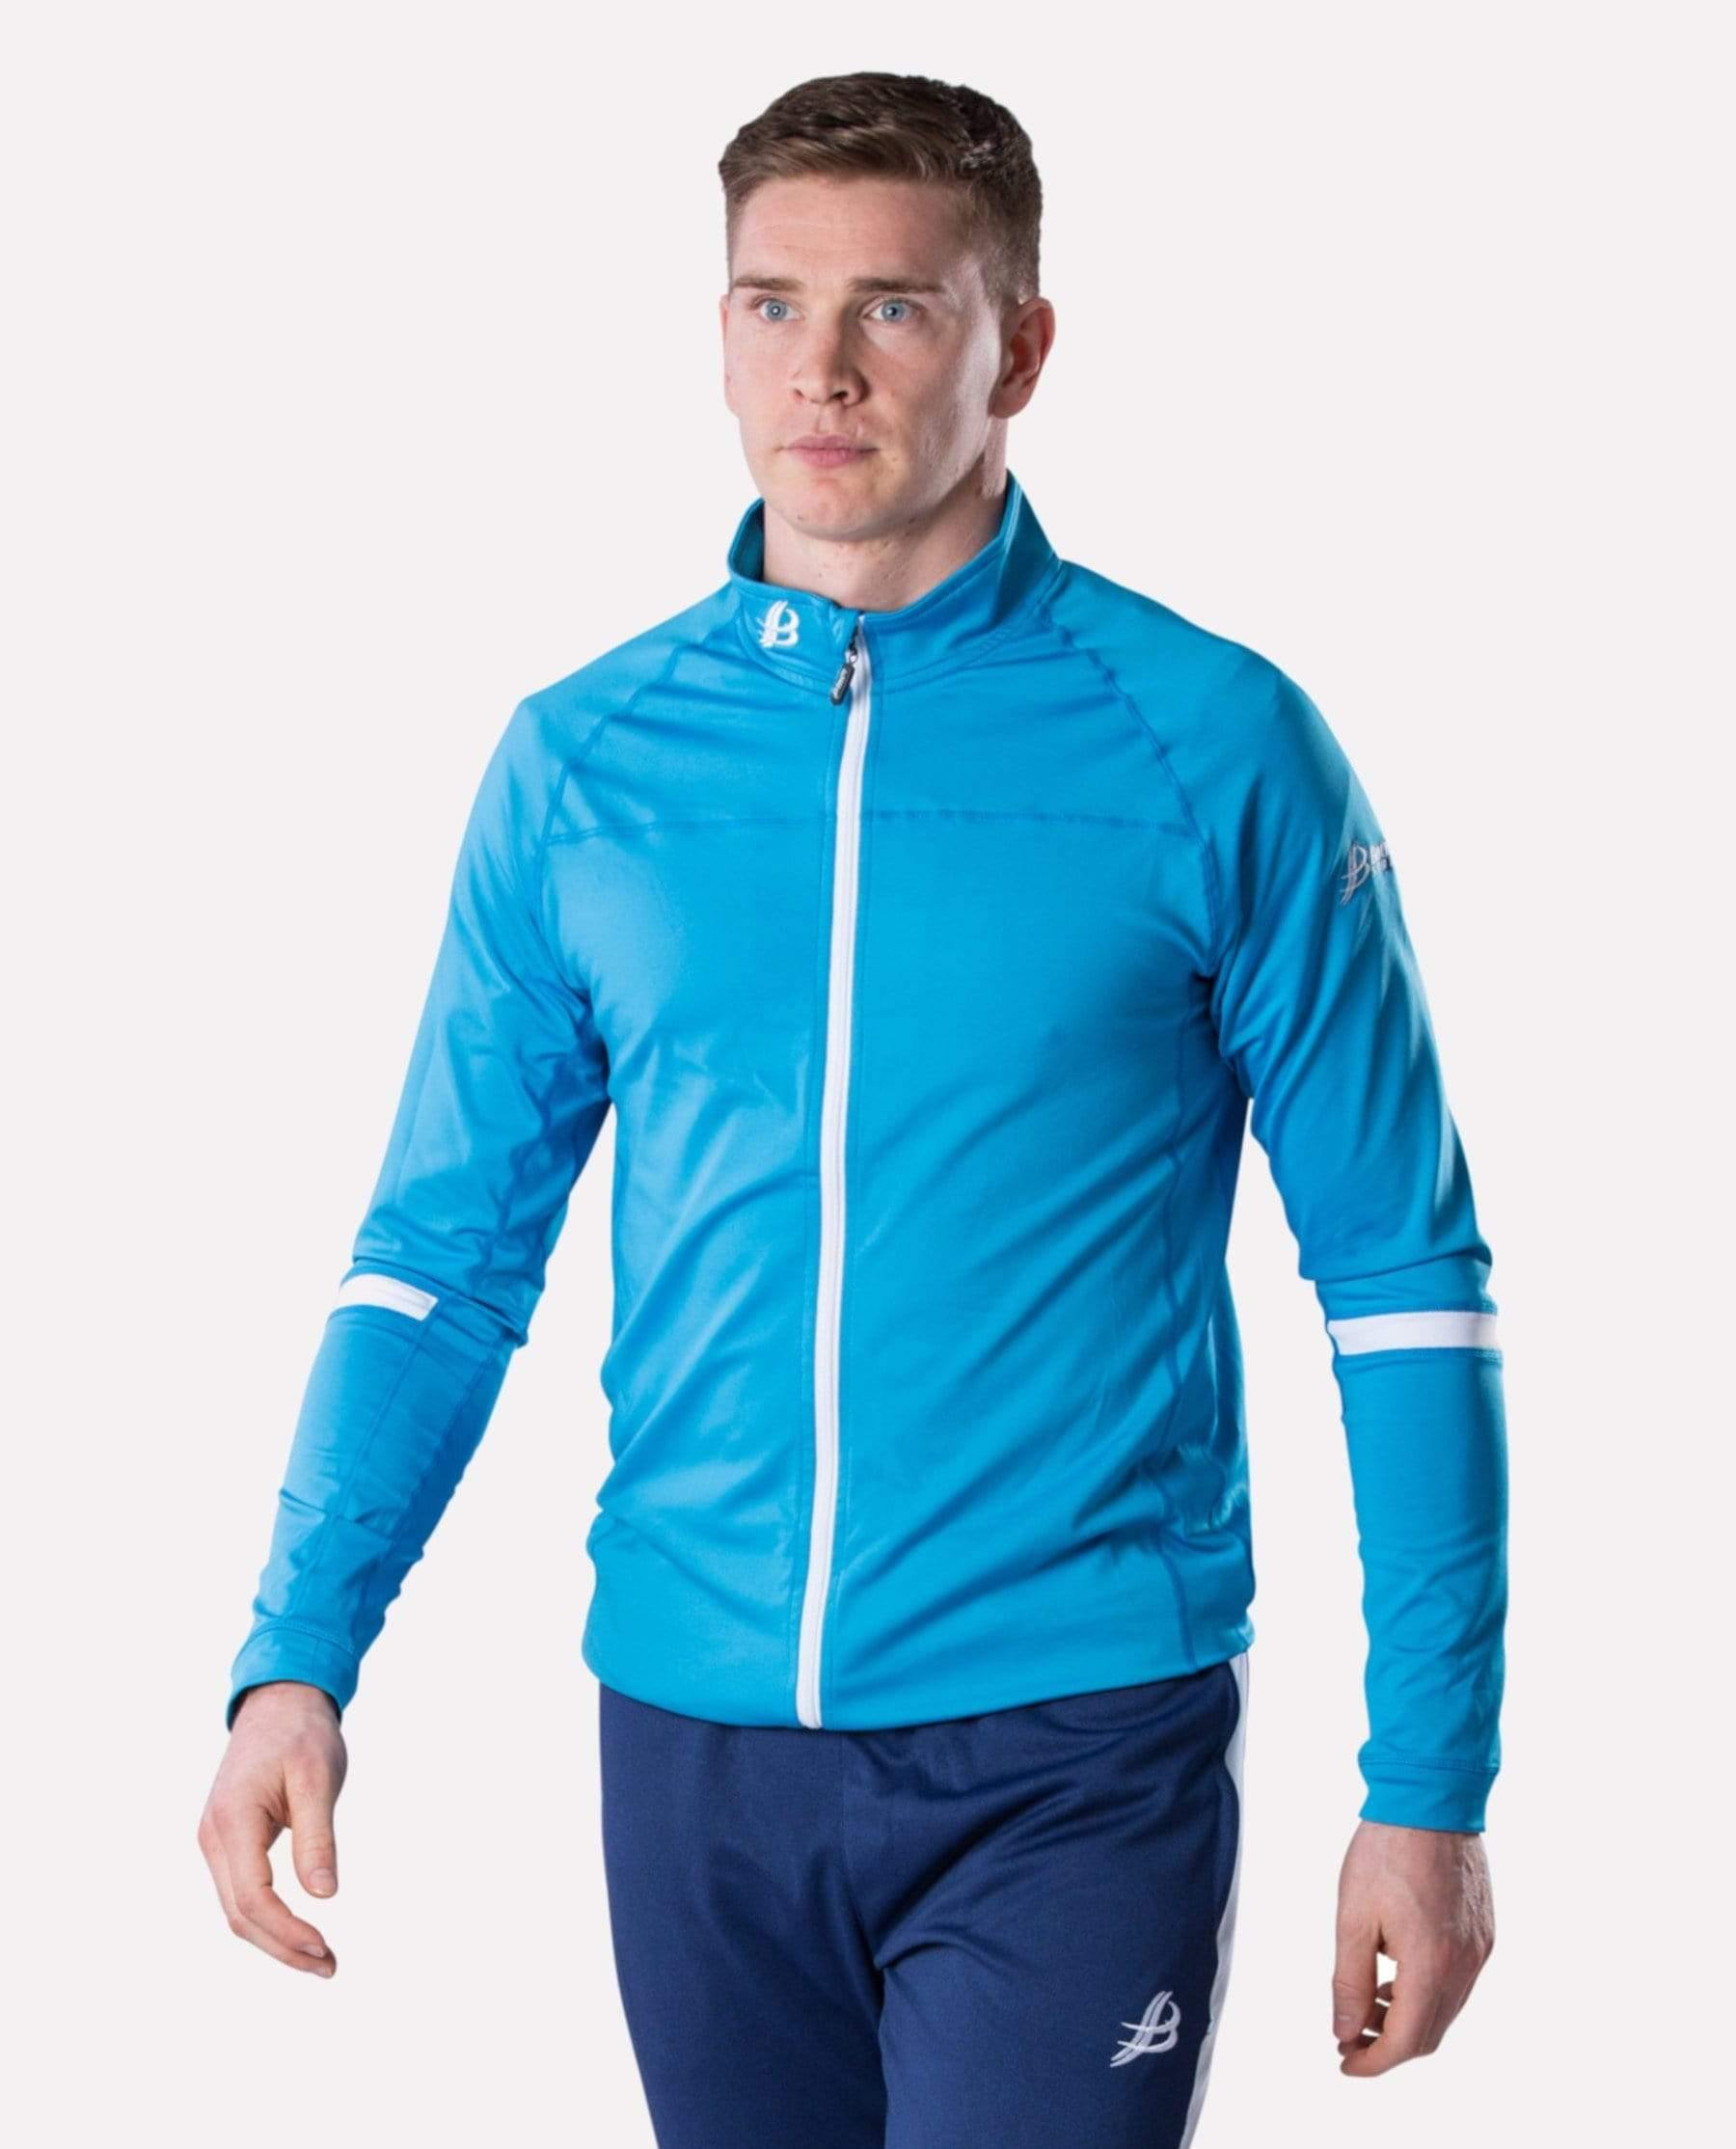 ALPHA Adult Full Zip (Cyan/White) - Bourke Sports Limited